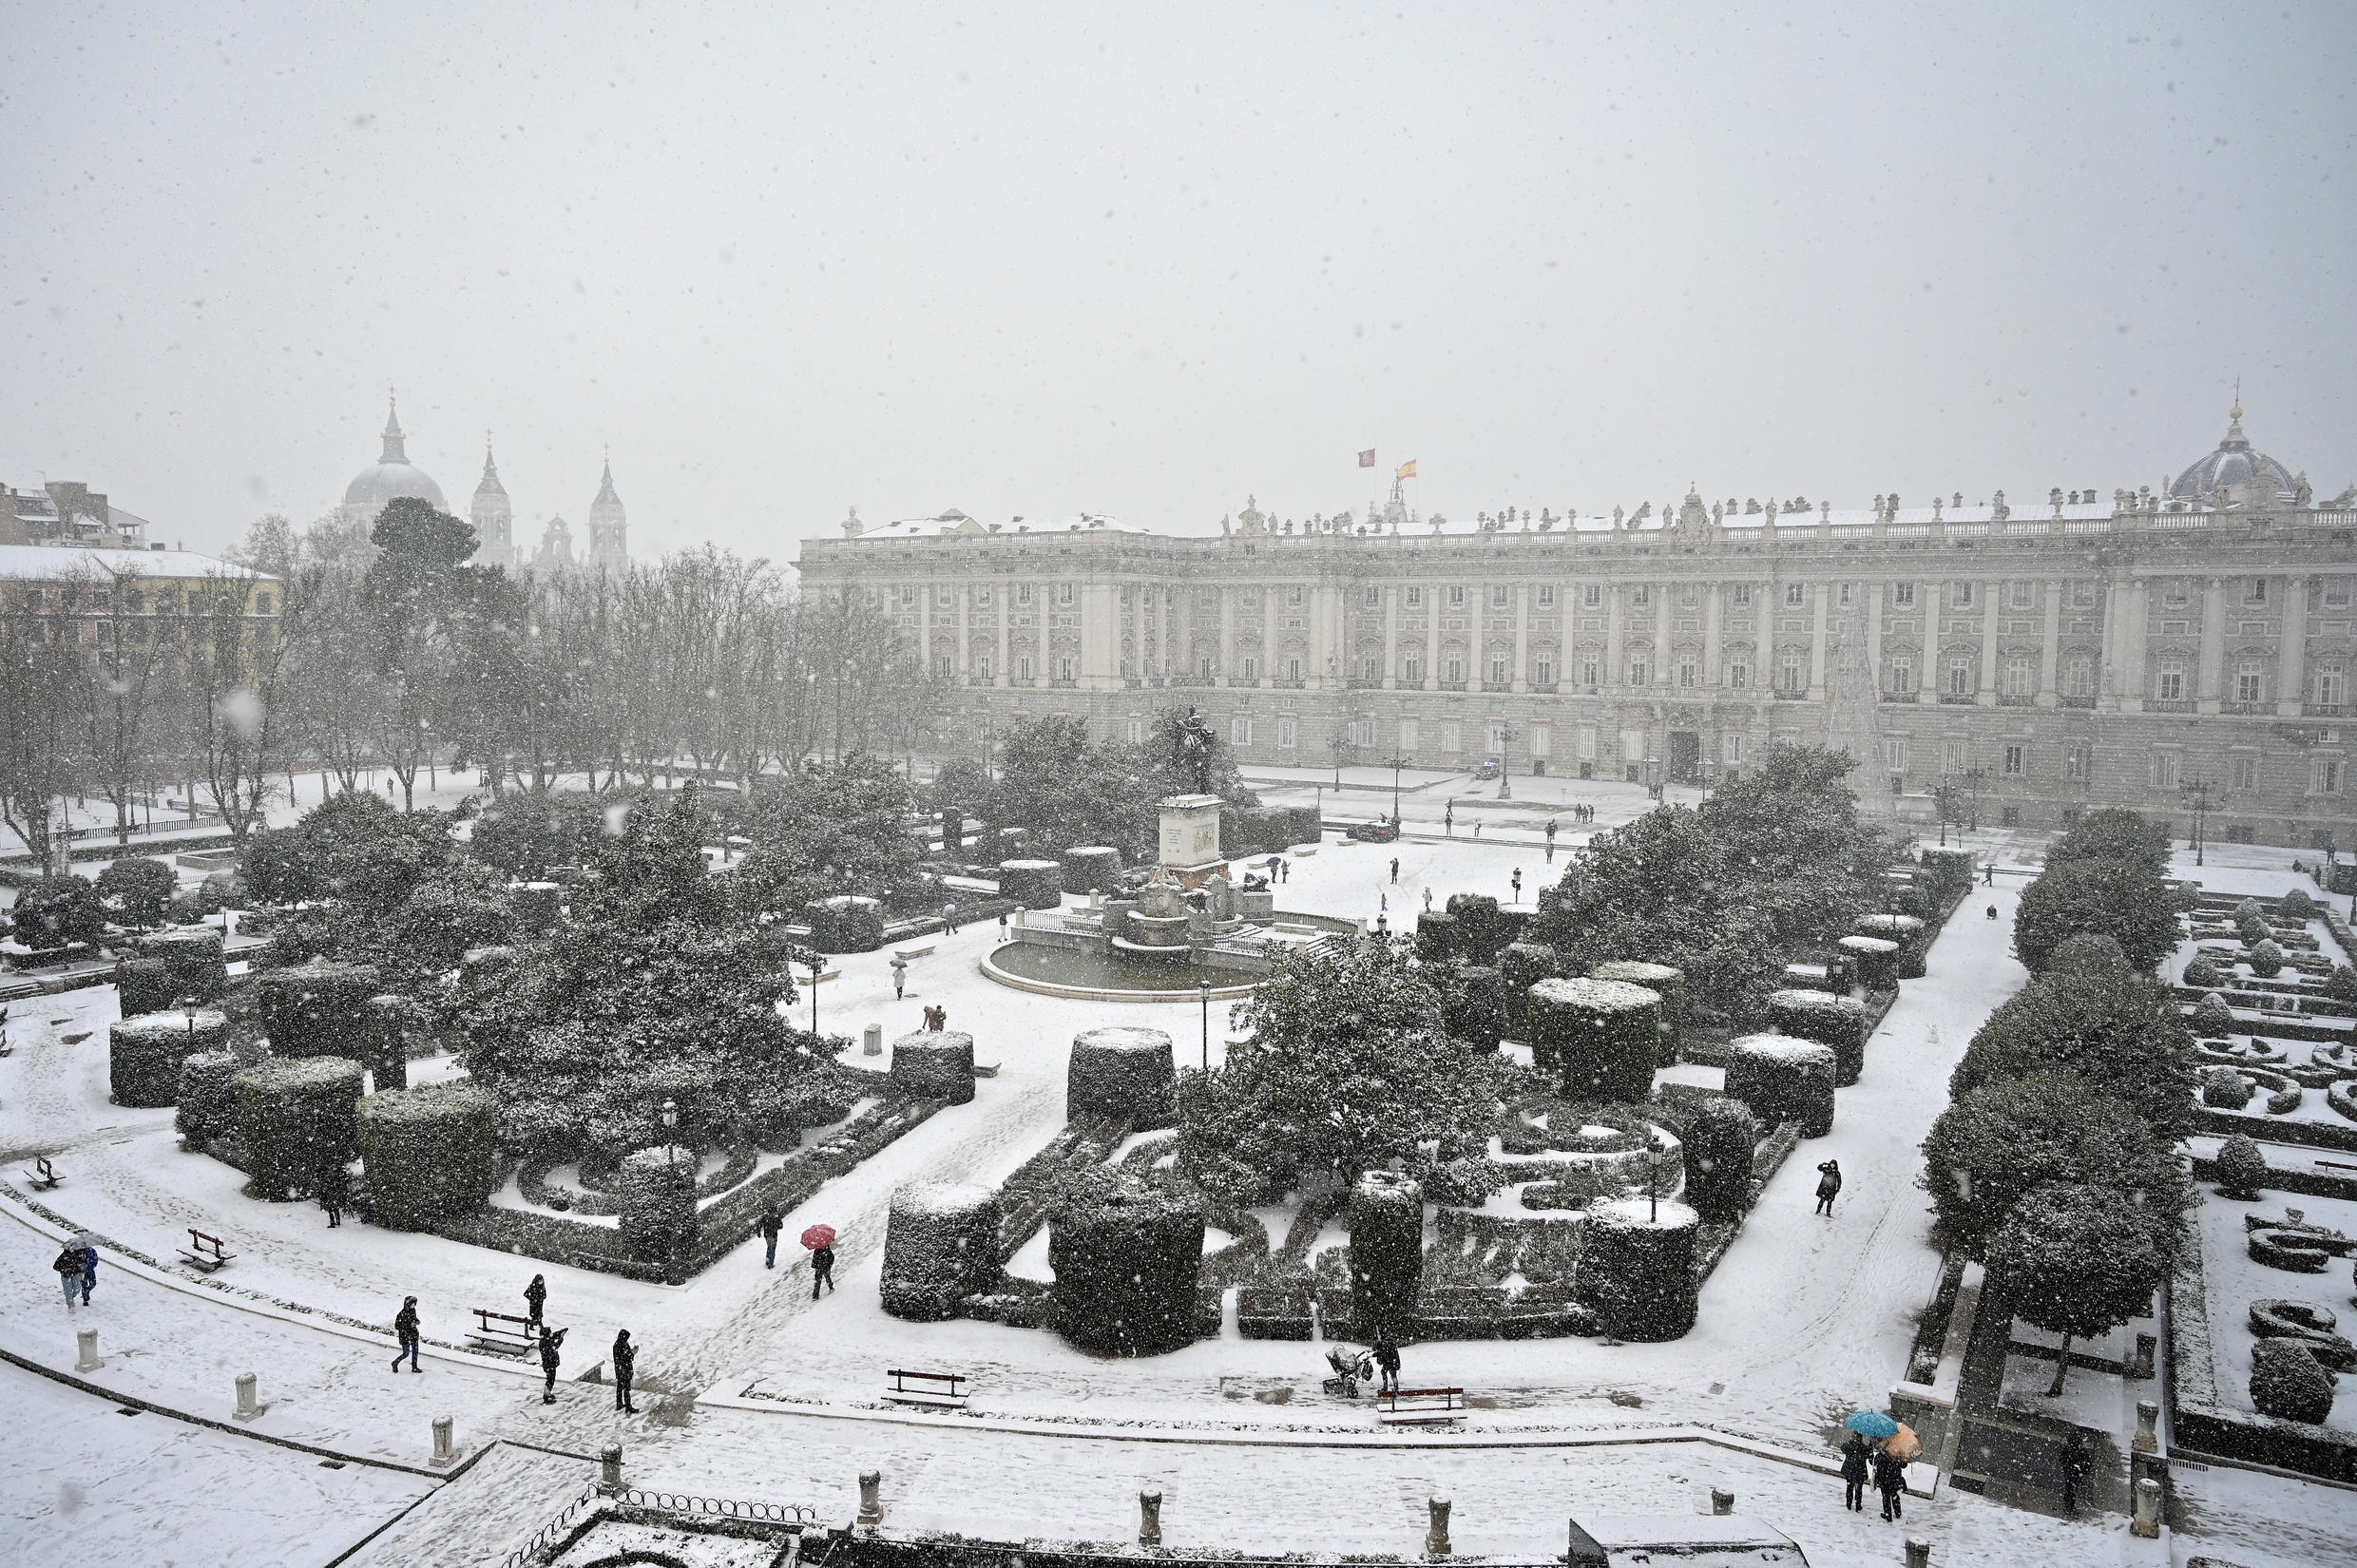 Downtown Madrid lied under a blanket of heavy snow brought on by storm Filomena, 9 January 2021